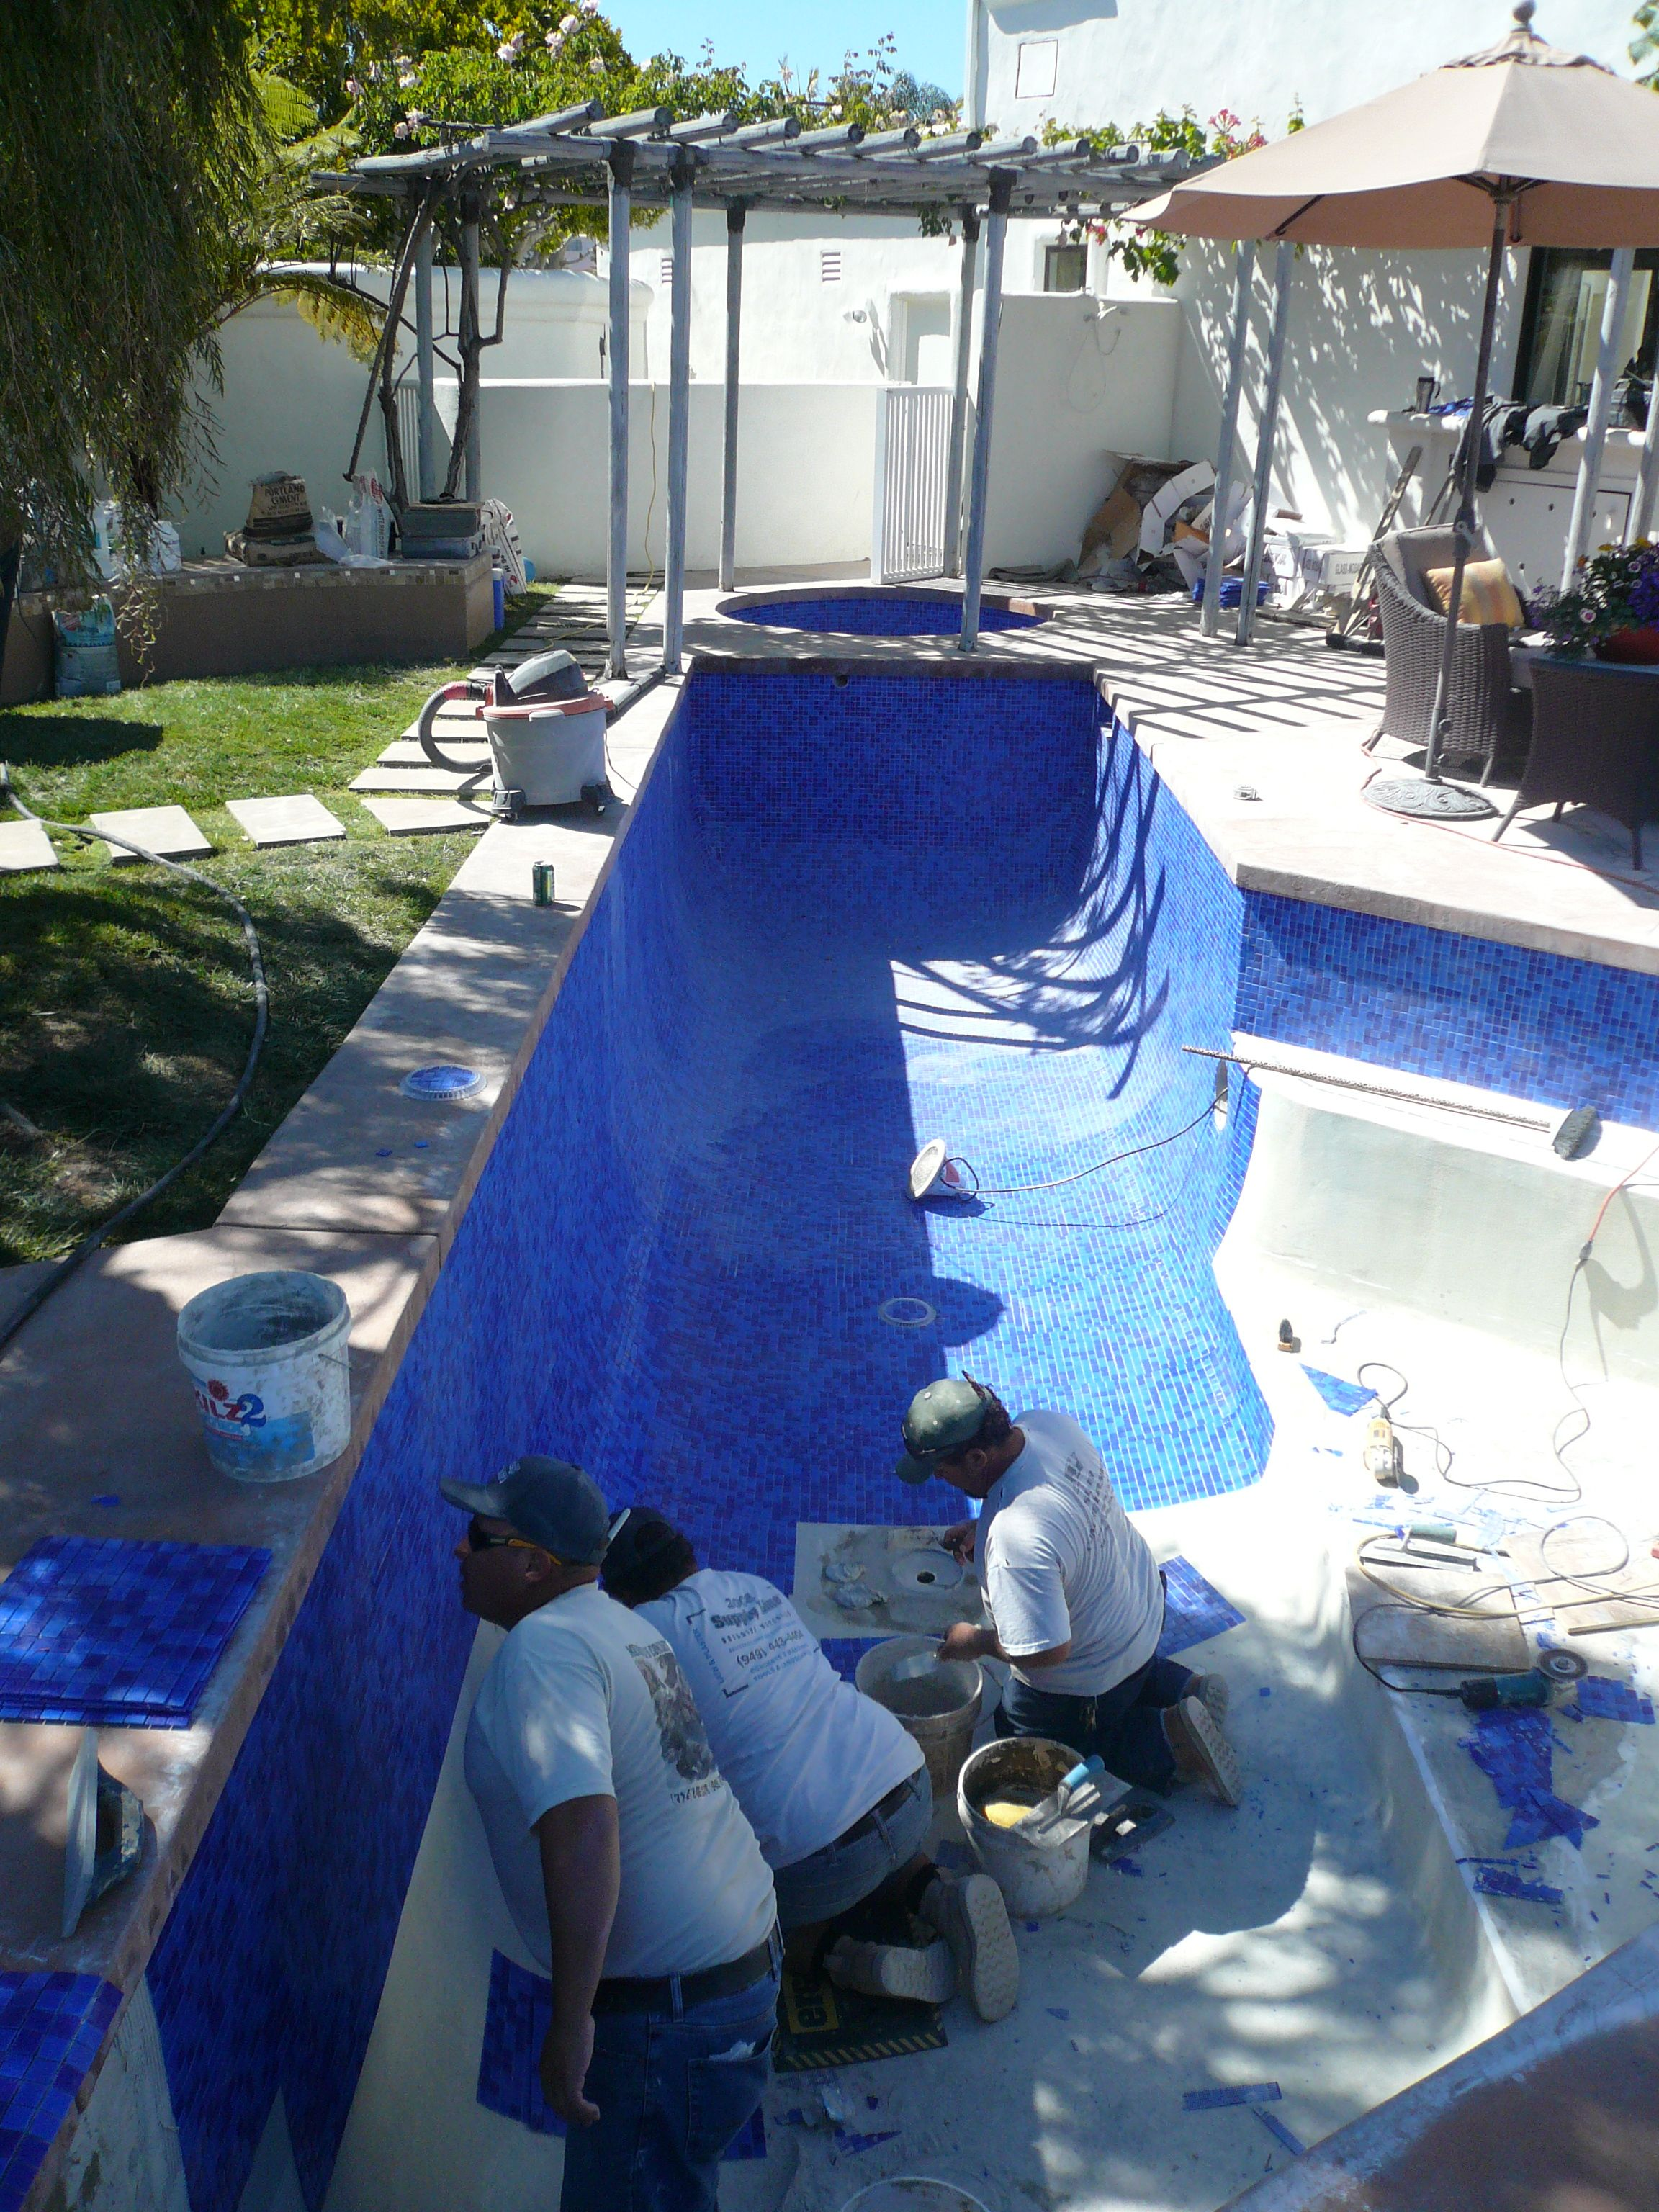 1x1 Blue Tile As Plaster Throughout Pool And Spa By Atlaspools